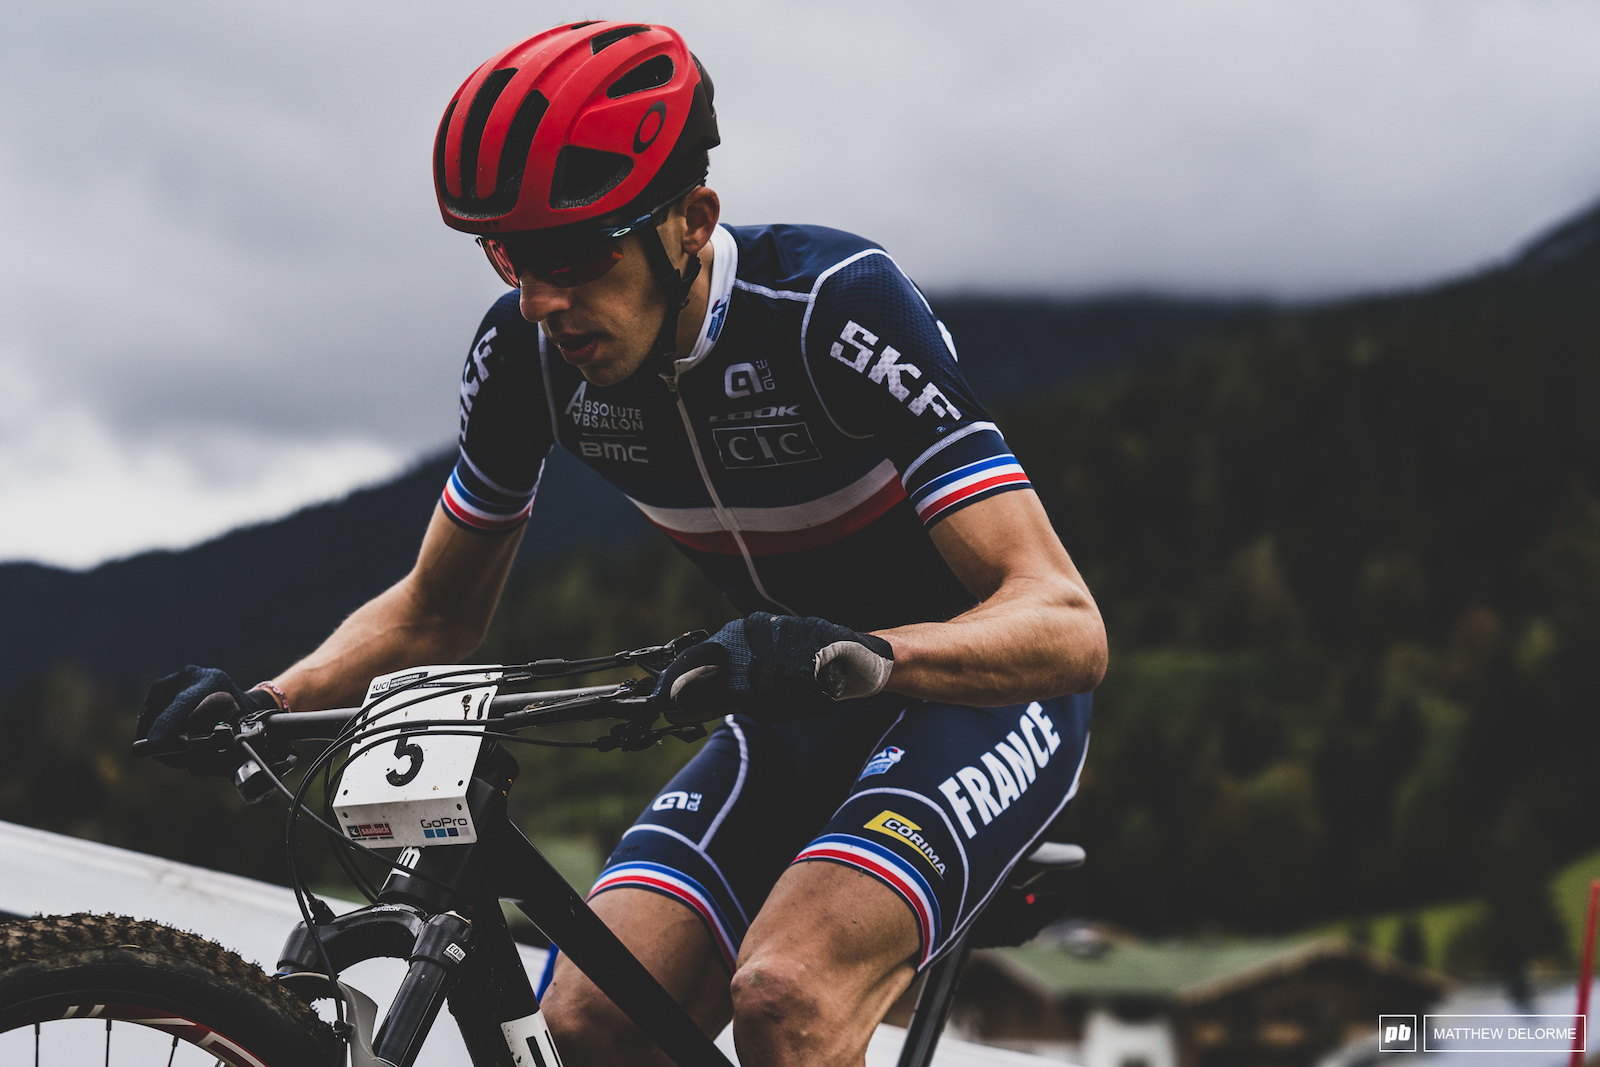 A strong start and legs to carry him through to the end. Jordan Sarrou had what it took today in Leogang.